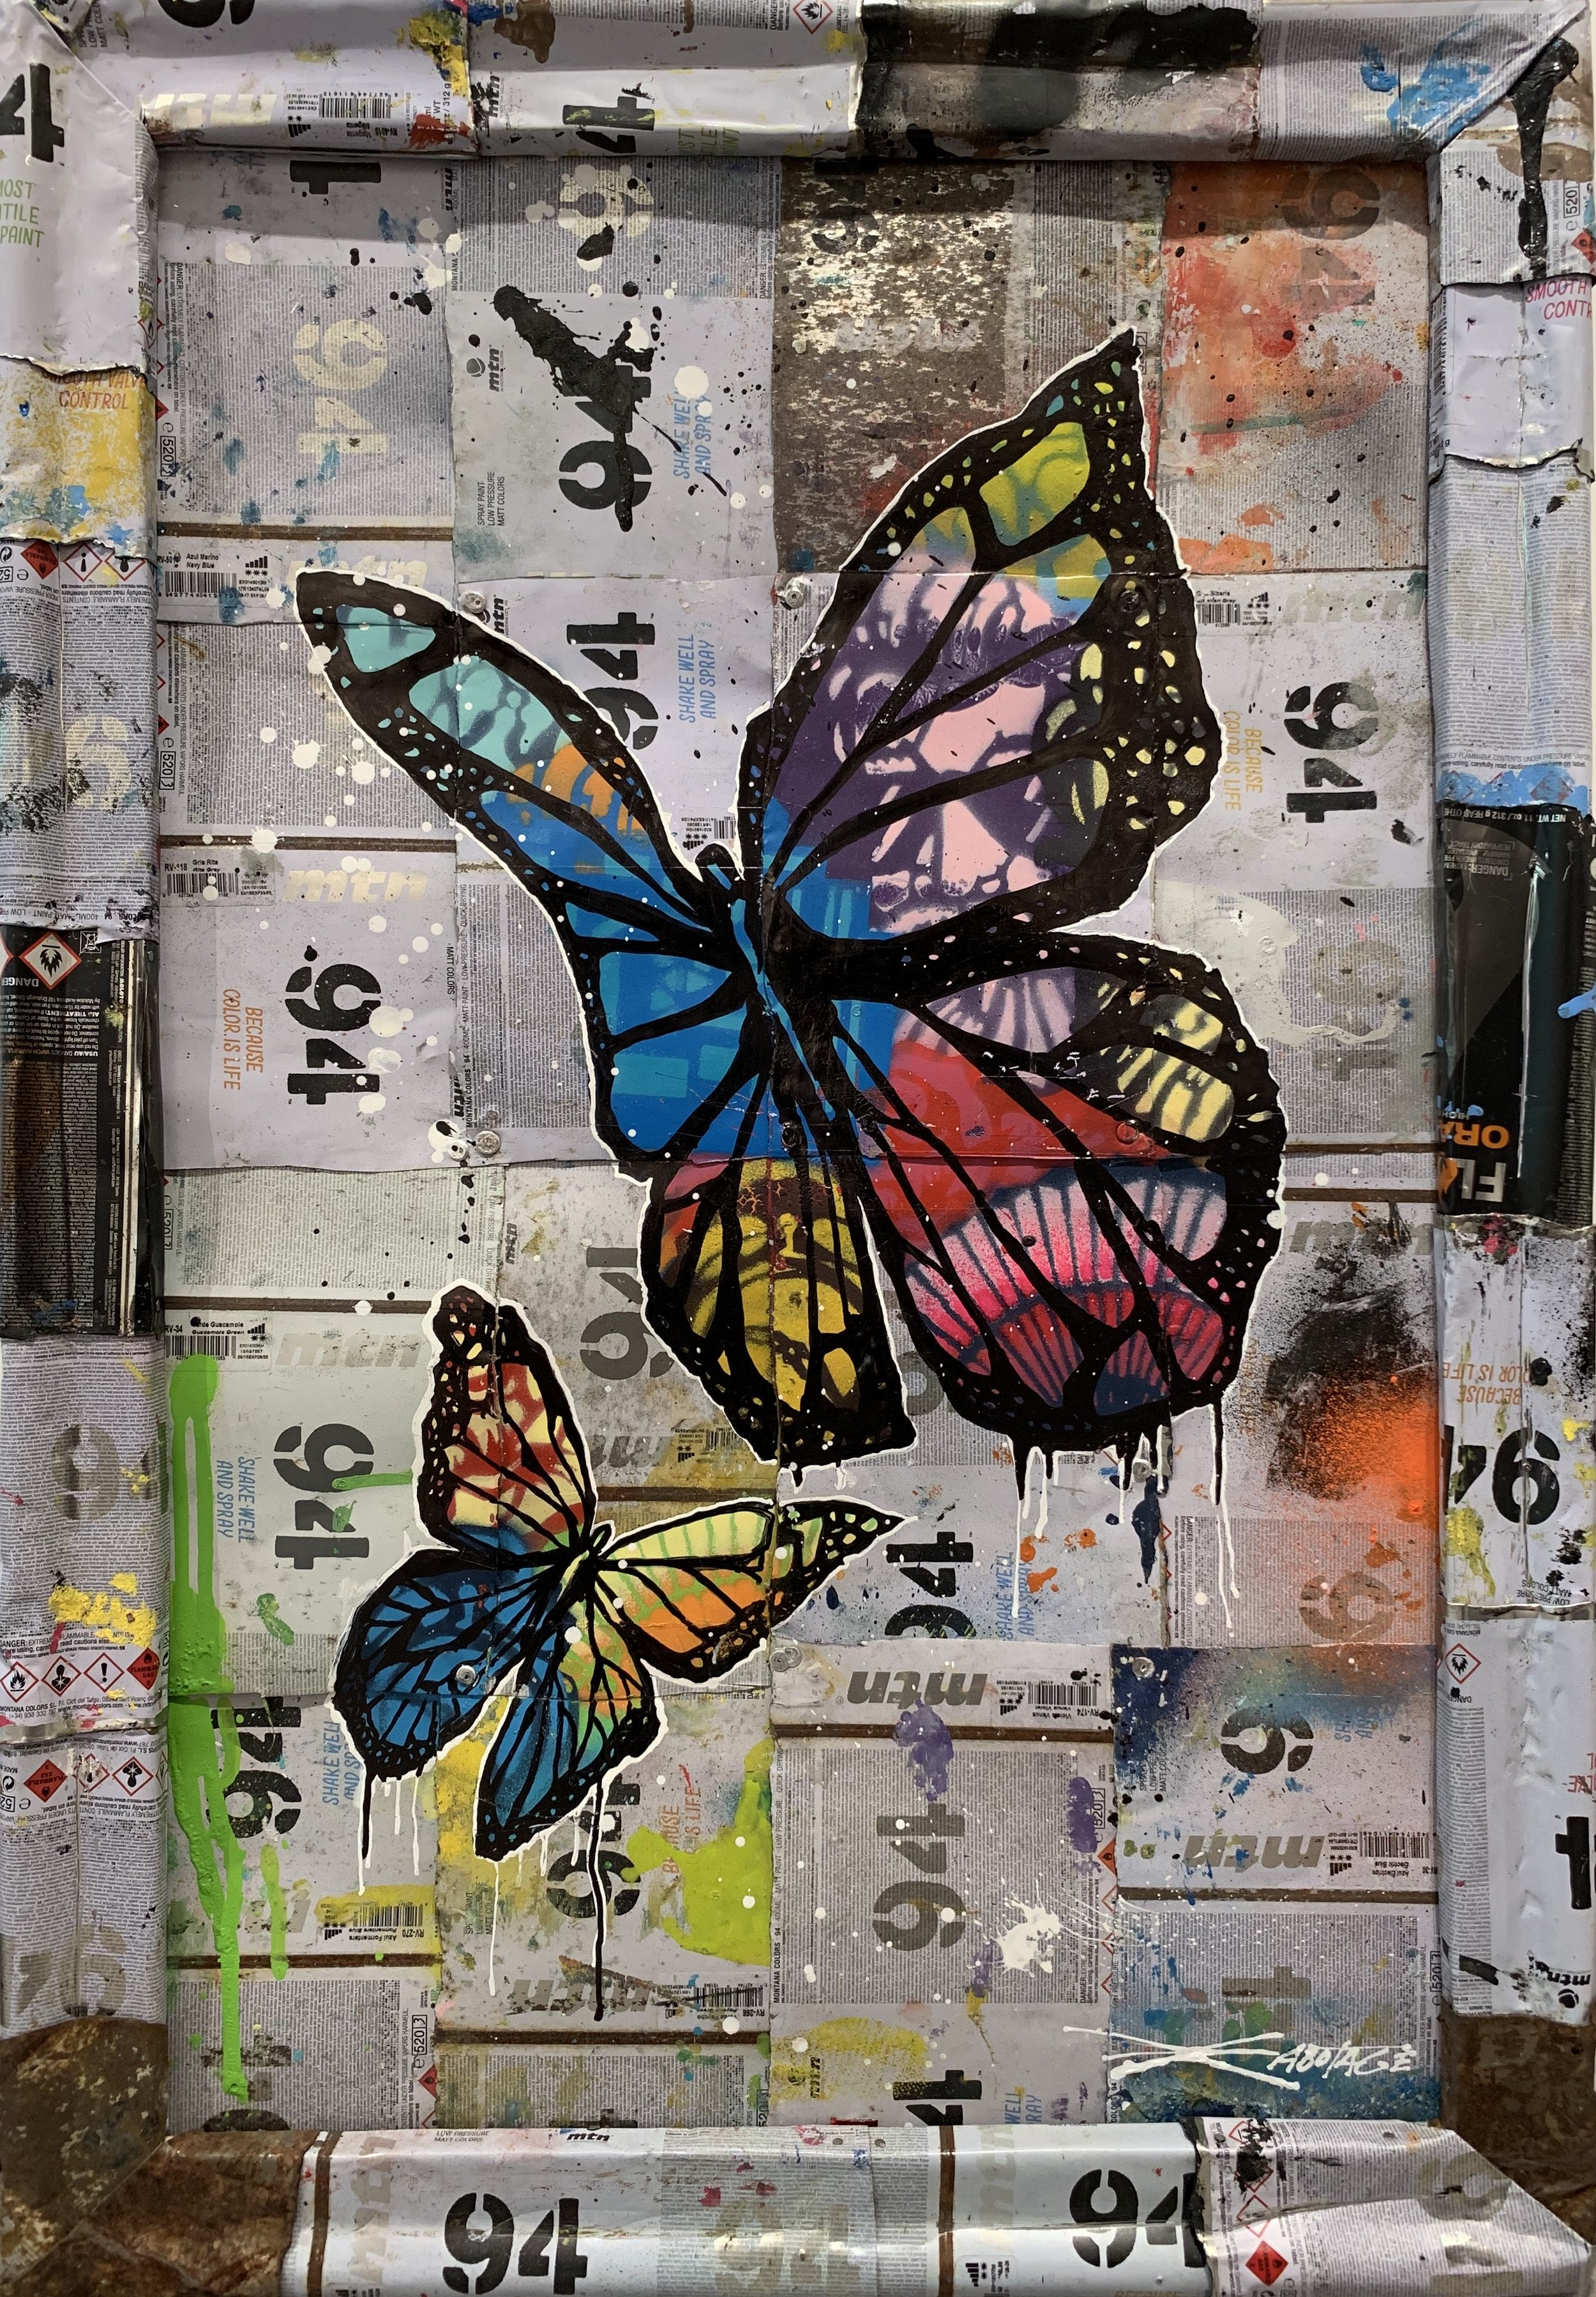 """Butterflies"" Stencil Mixed Media Spray Paint and Graffiti Markers on deconstructed Can Background 78 x 54 cm 2018"